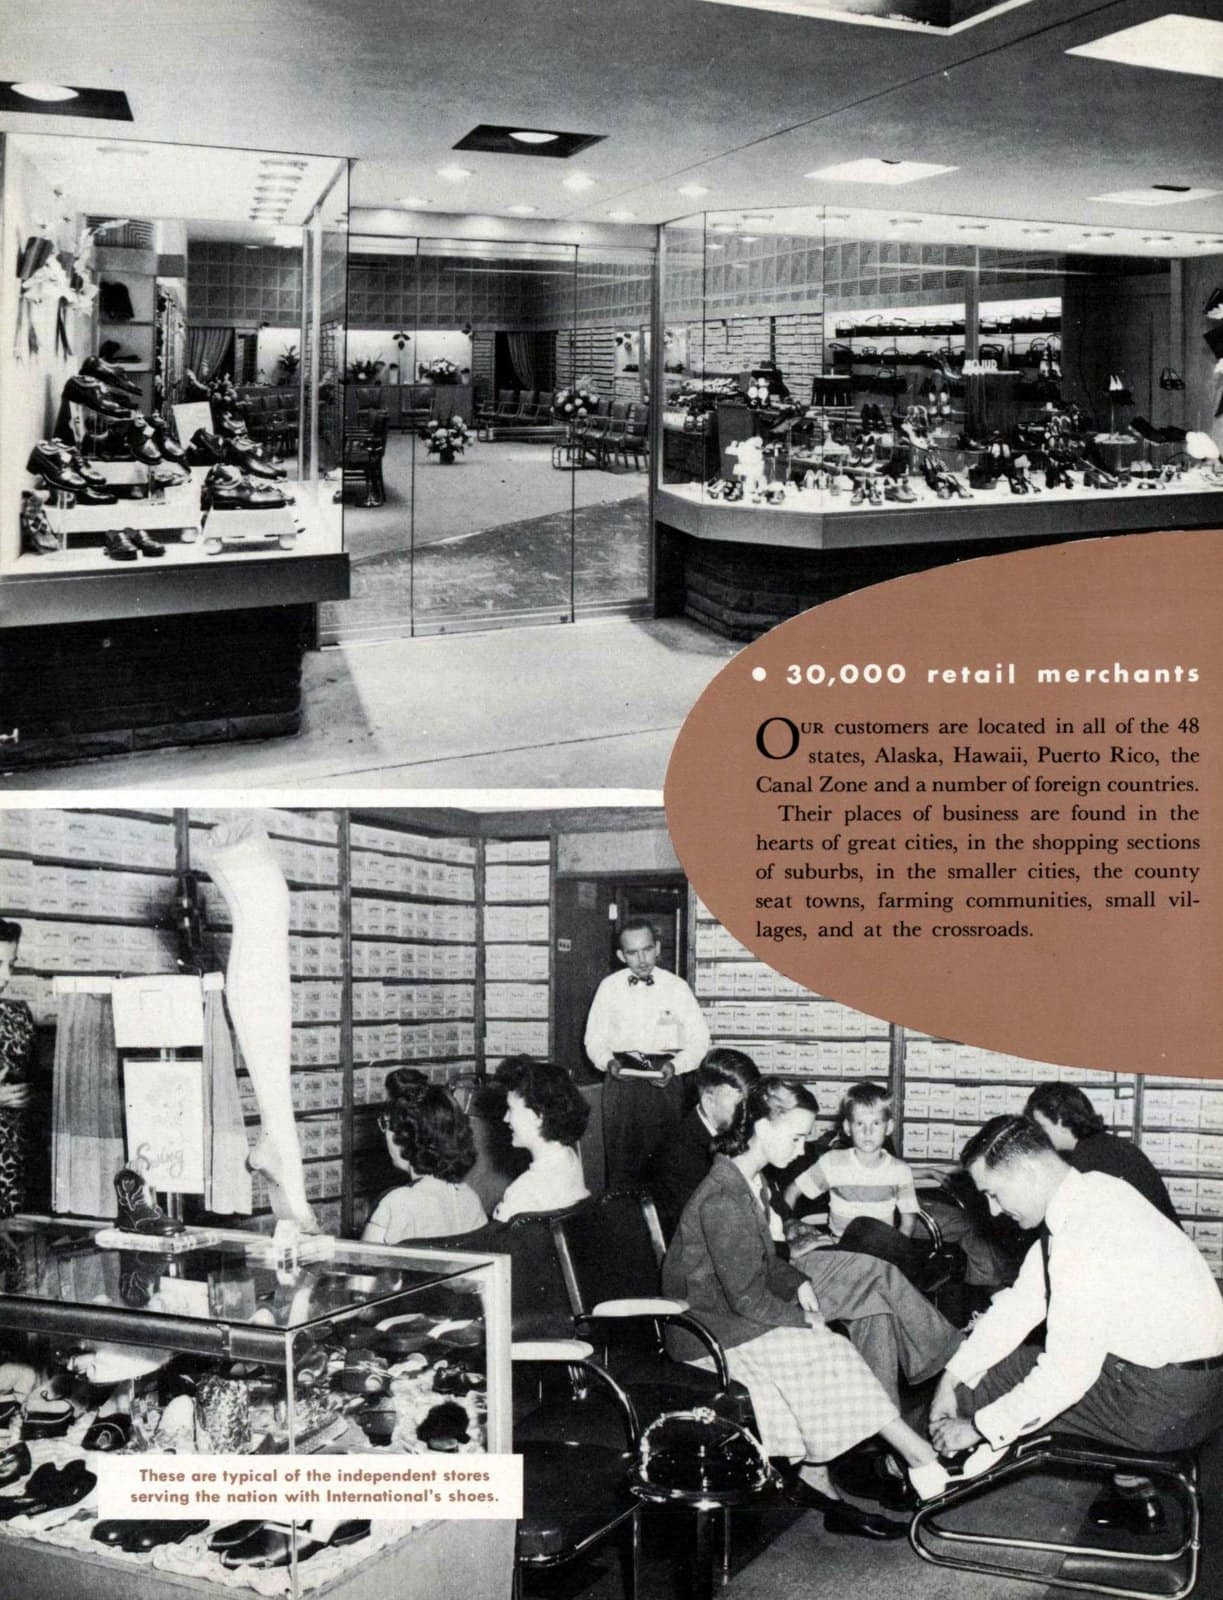 Shoe store scenes from 1950